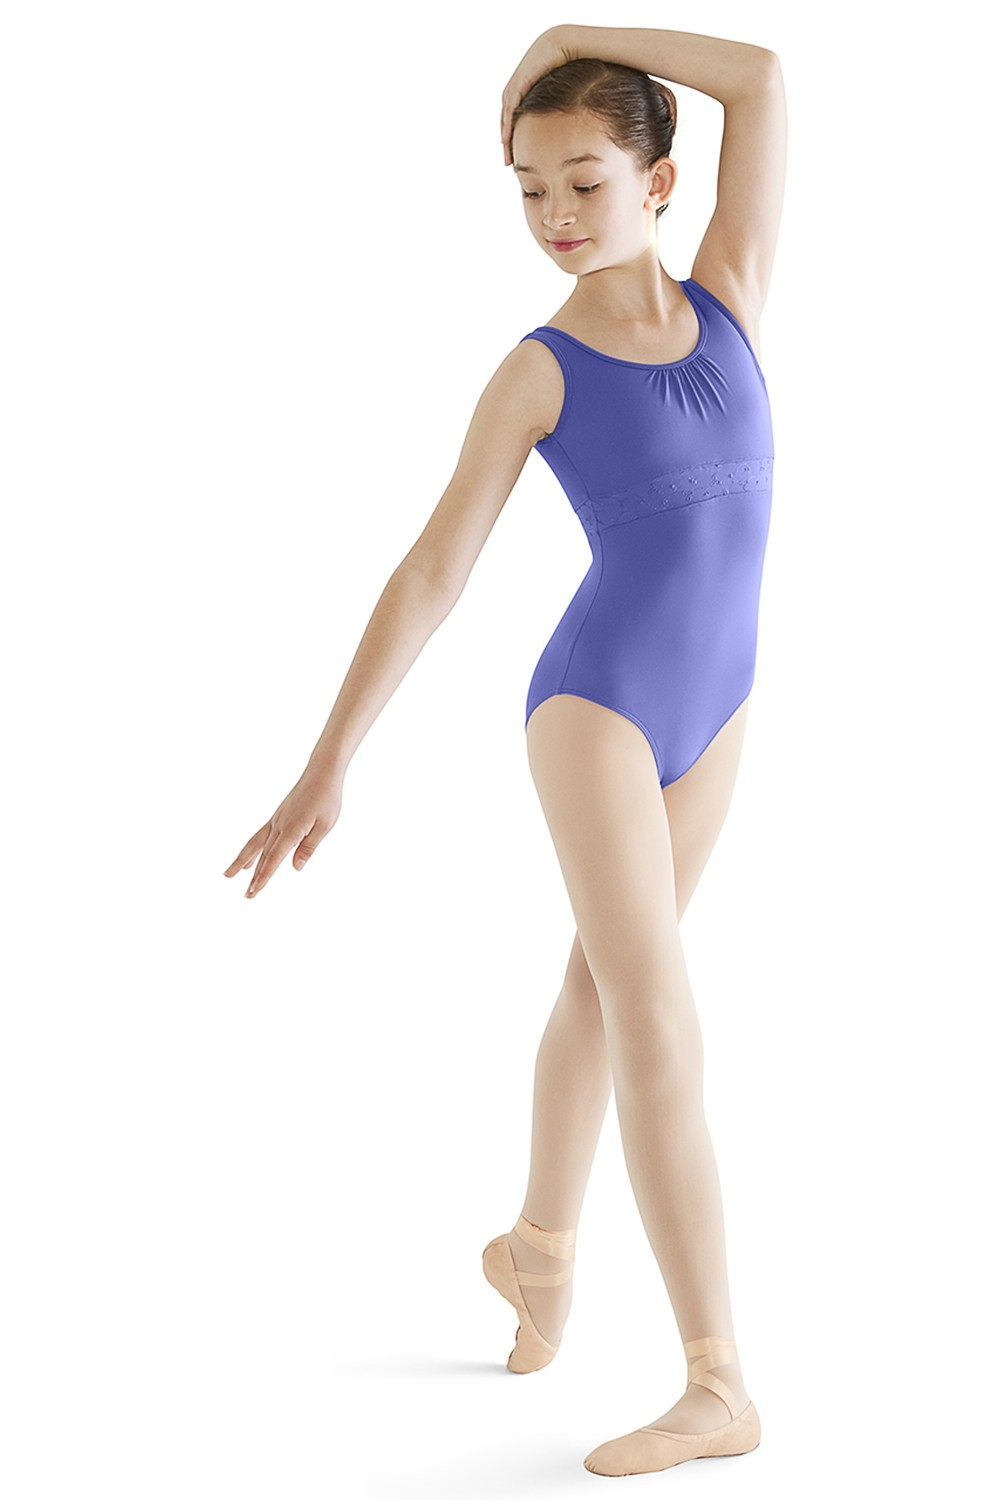 Garnece Girls Camisole Leotards